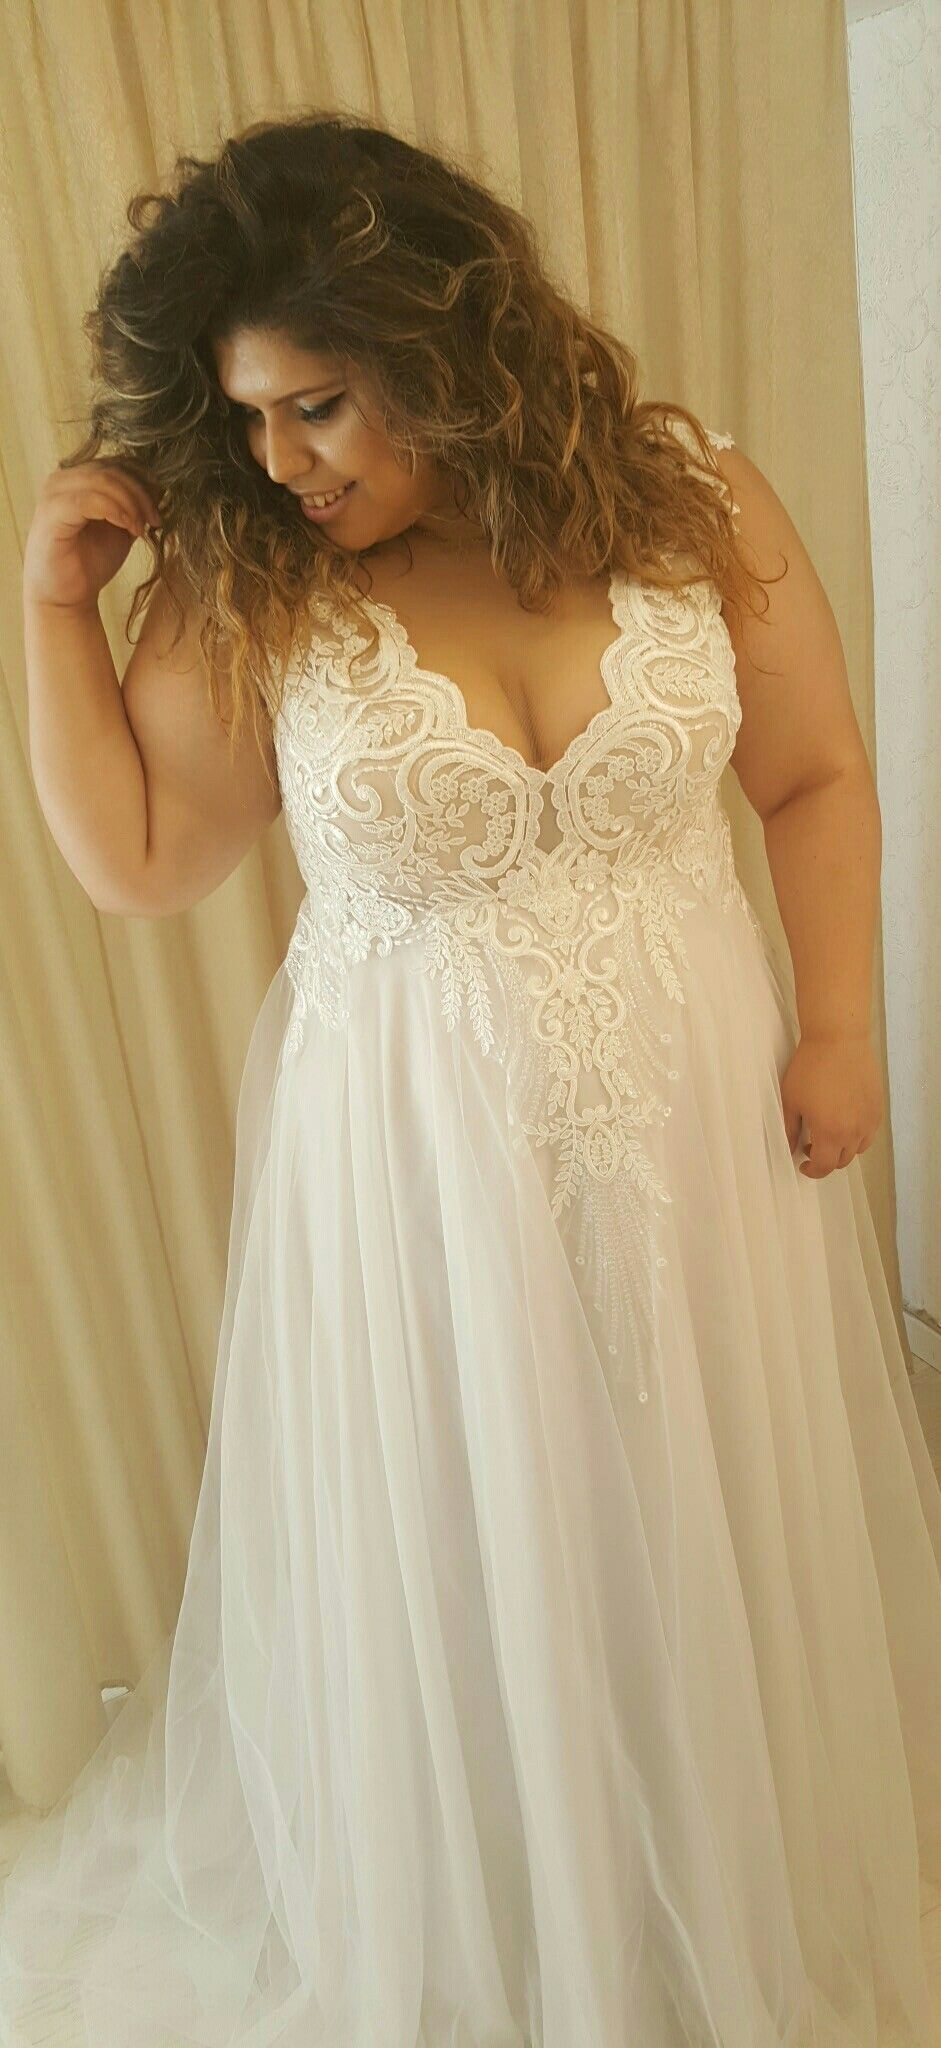 Plus size wedding gown with lace top and tulle skirt. Tracie ...